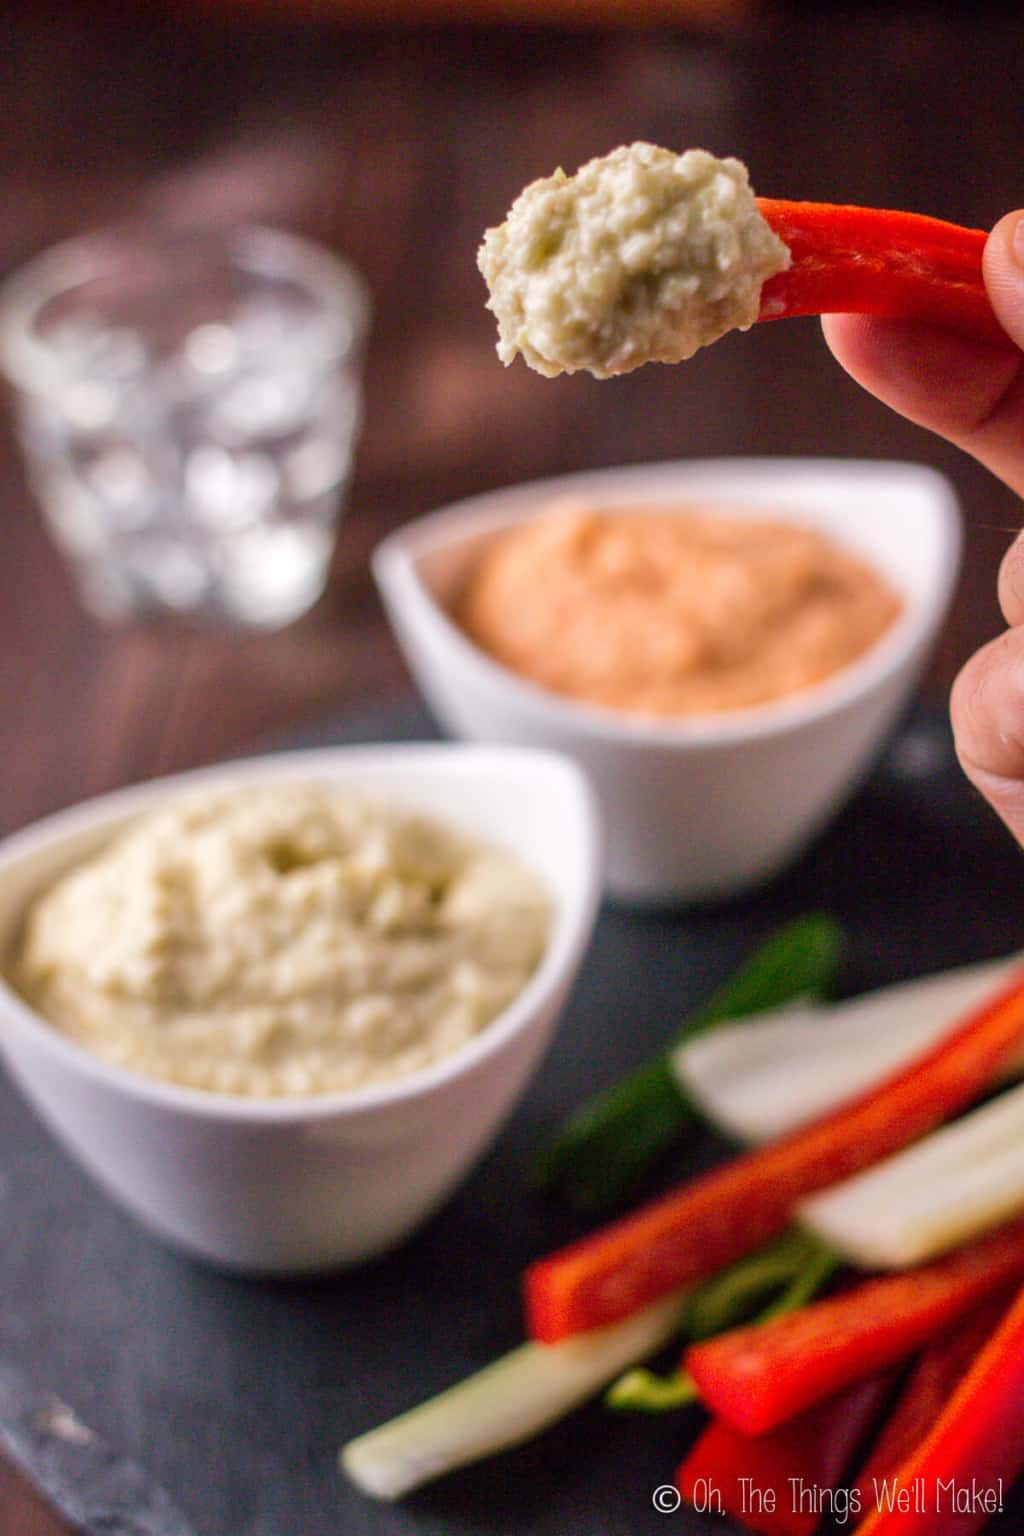 Close-up of a hand holding a red pepper strip topped with zucchini hummus with two bowls of zucchini hummus in the background.